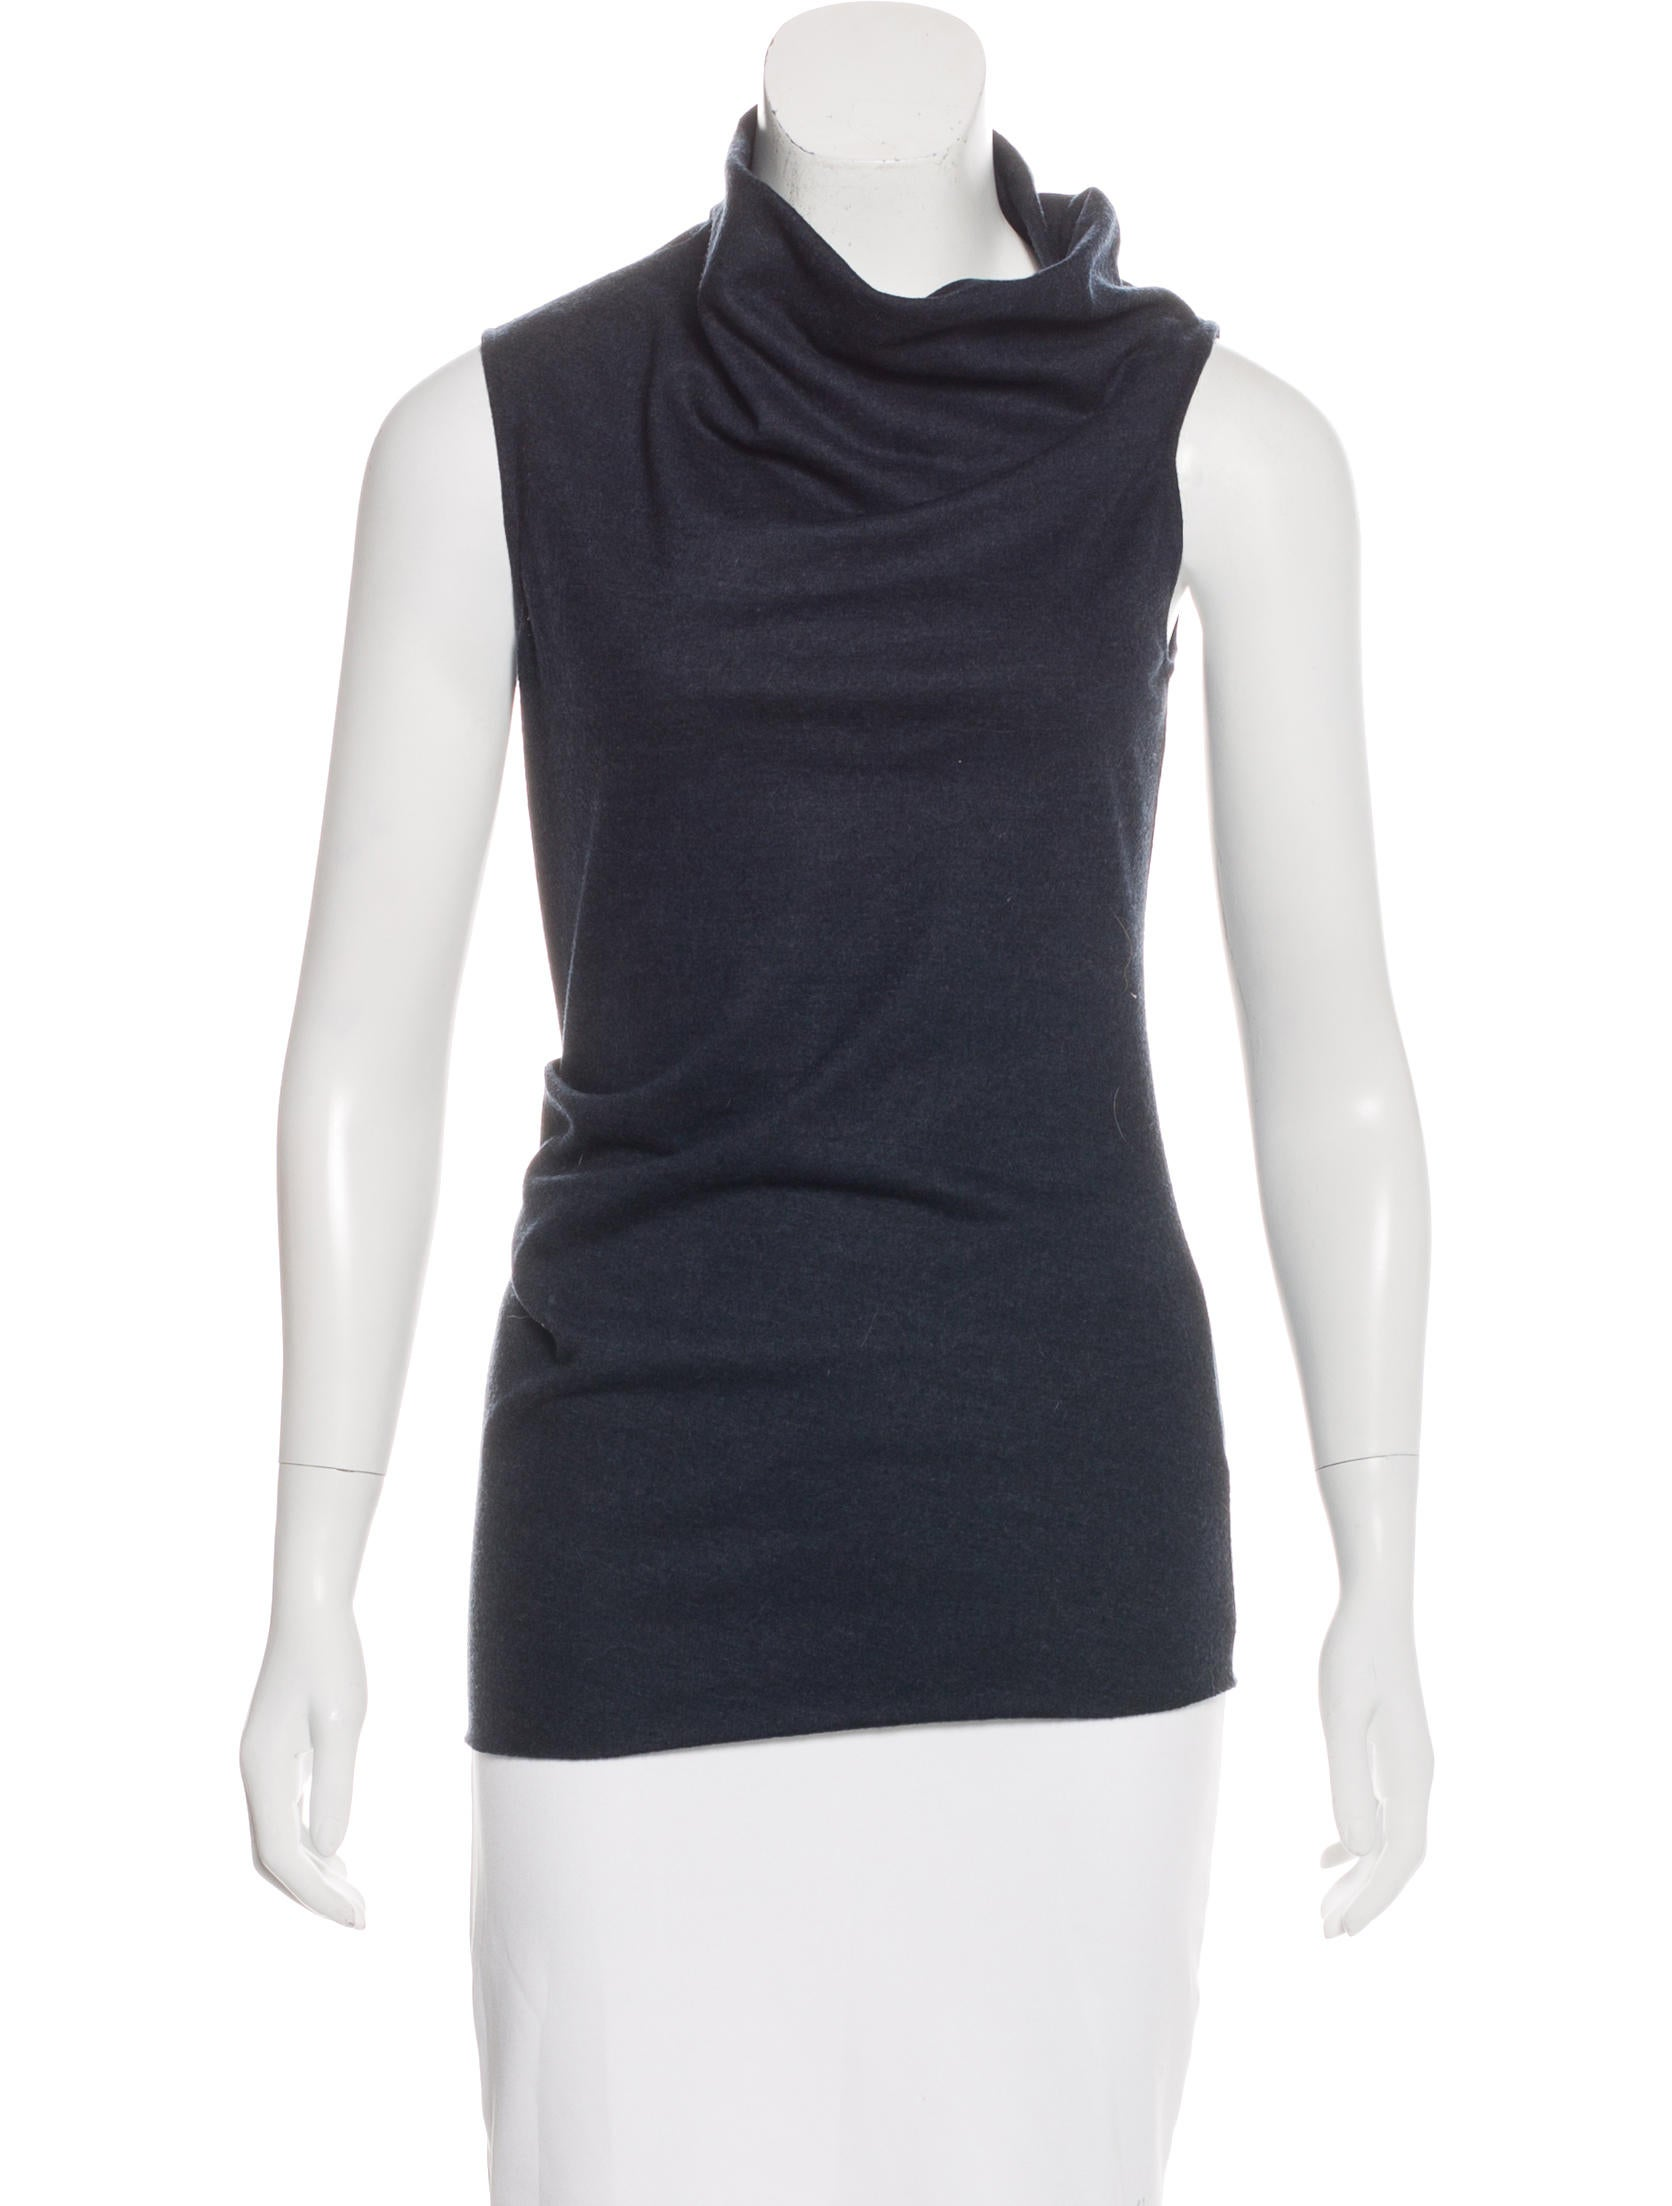 Helmut lang wool sleeveless top clothing whelm51790 for Best wool shirt jackets